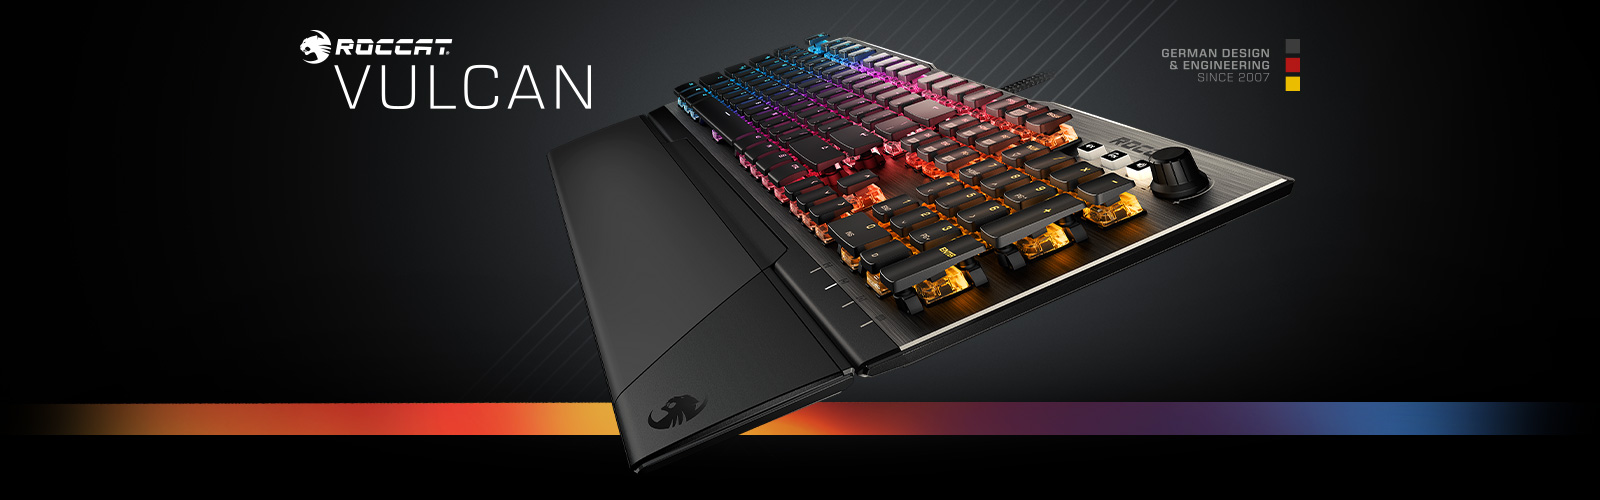 The Best Keyboards Of 2018 - ROCCAT Vulcan mechanical gaming keyboard